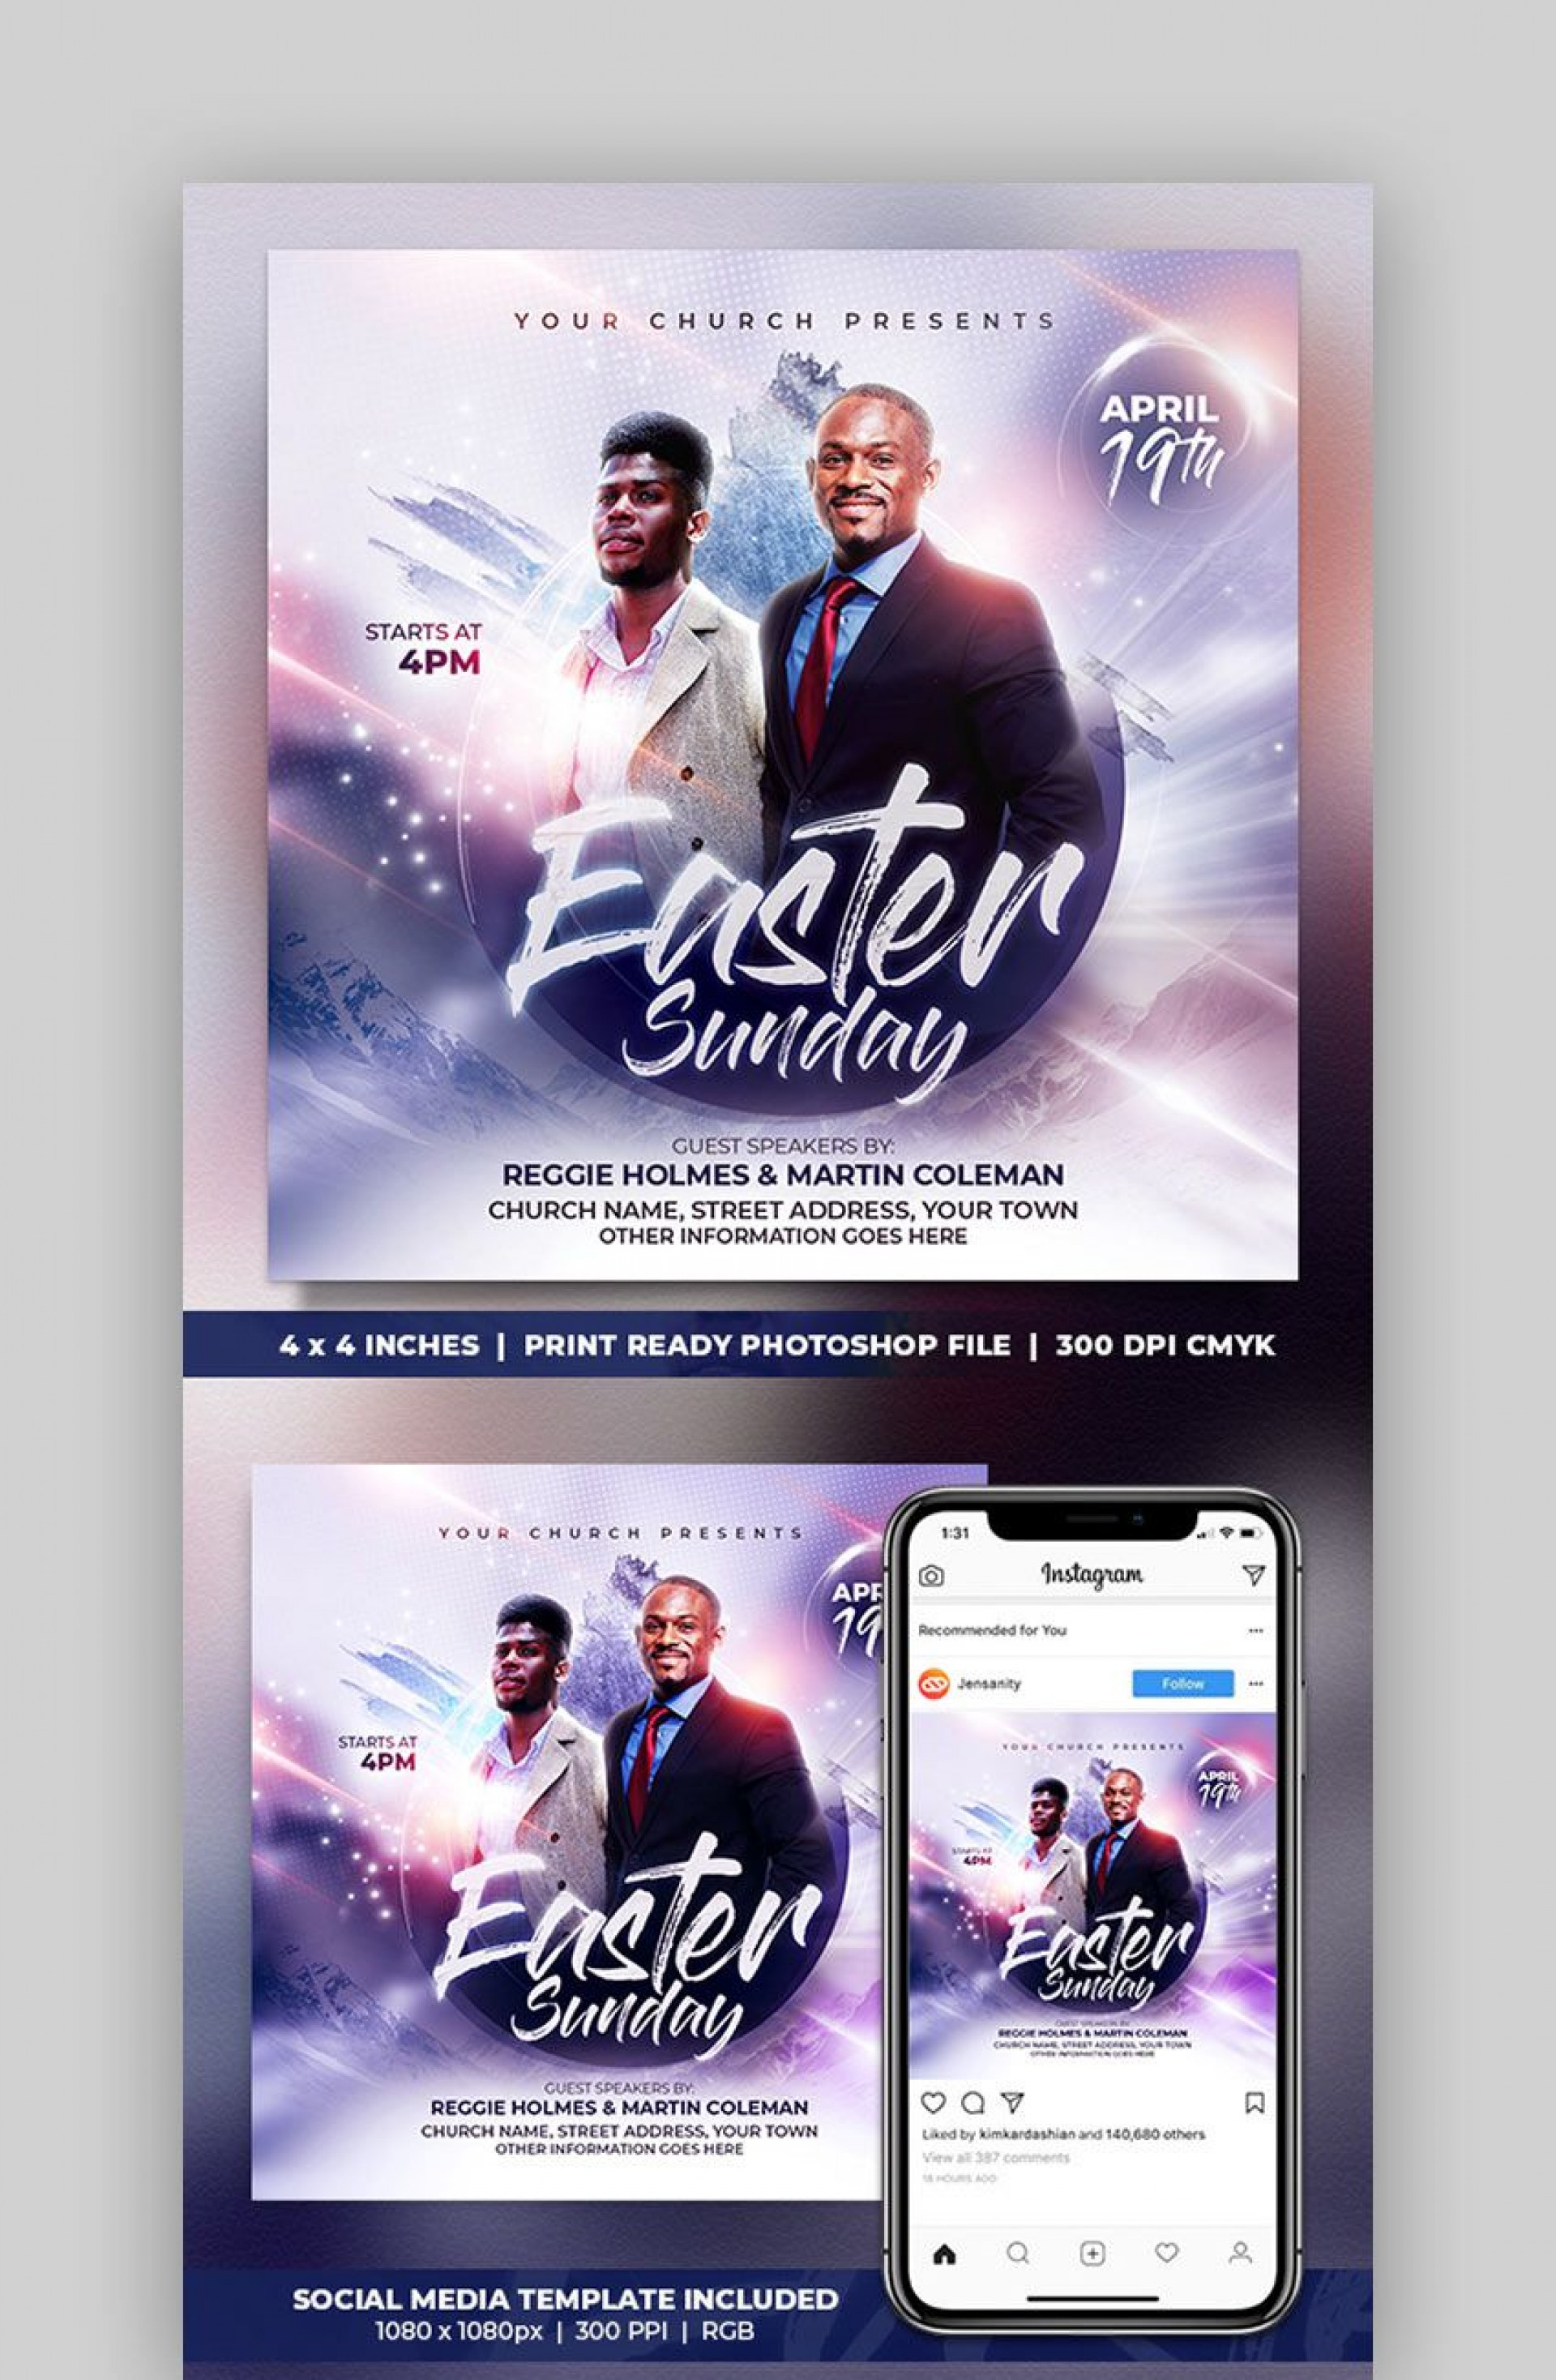 005 Frightening Church Flyer Template Free Example  Easter Anniversary Conference Psd1920